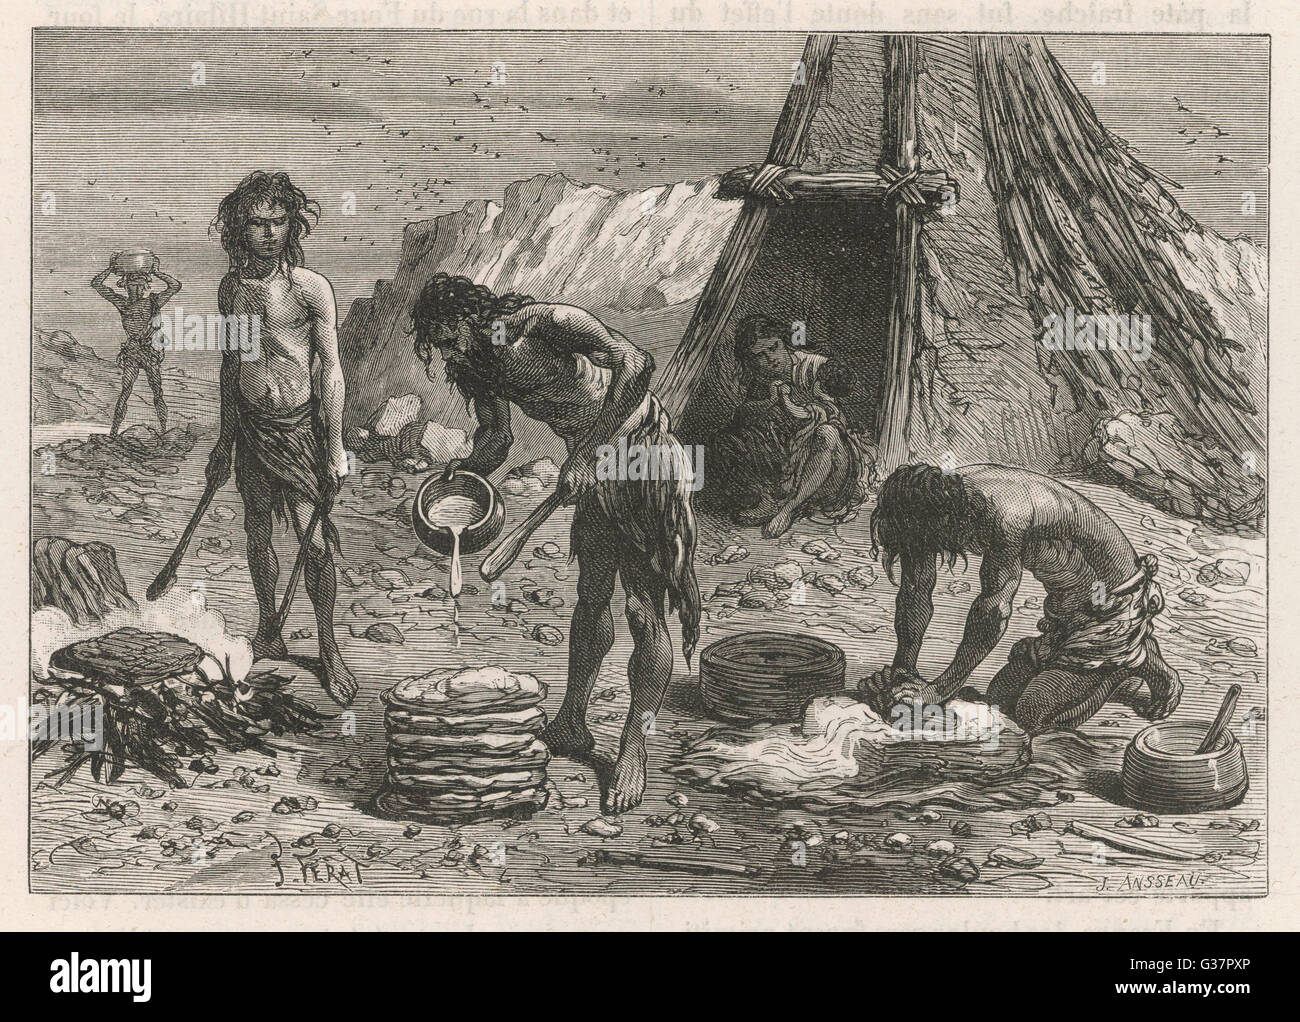 Primitive bread-making in the Stone Age (Palaeolithic era)        Date: circa 3000 BC - Stock Image